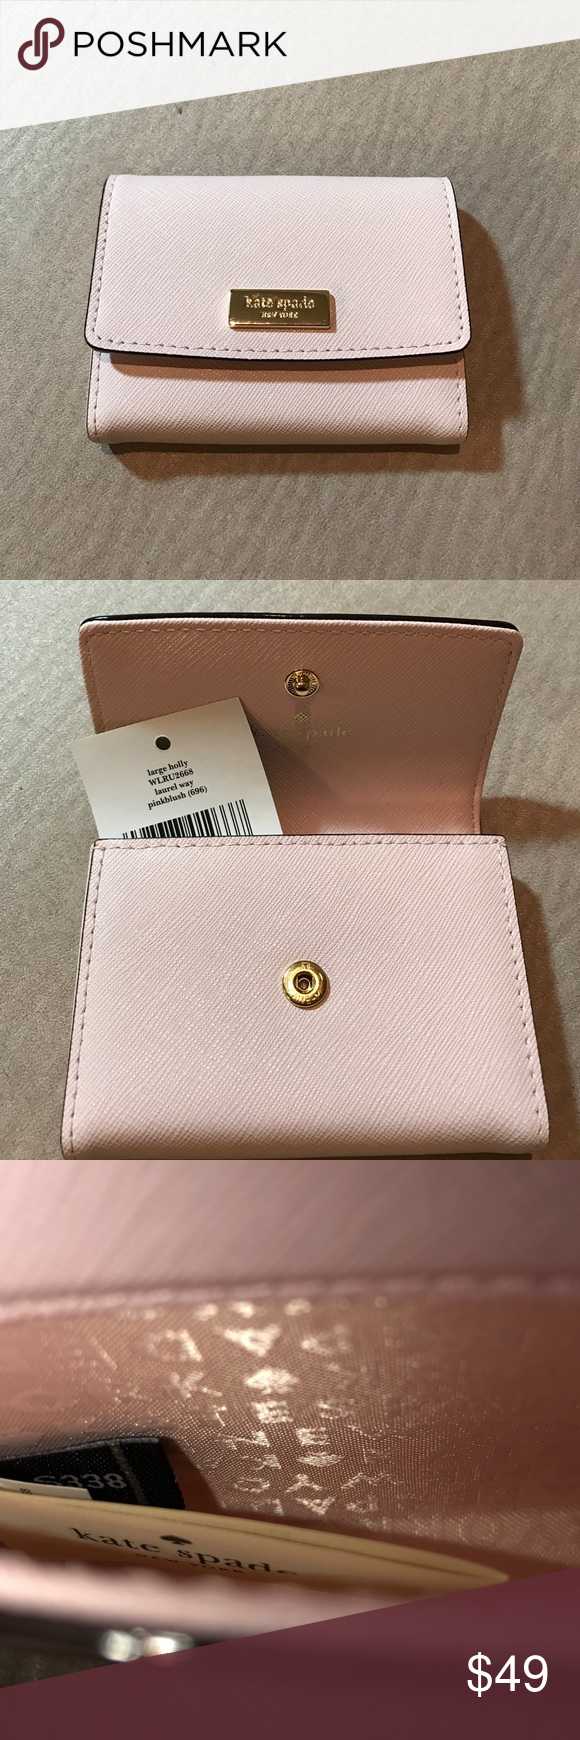 Kate Spade Lg Holly Laurel Way Card case Kate Spade pink blush ...